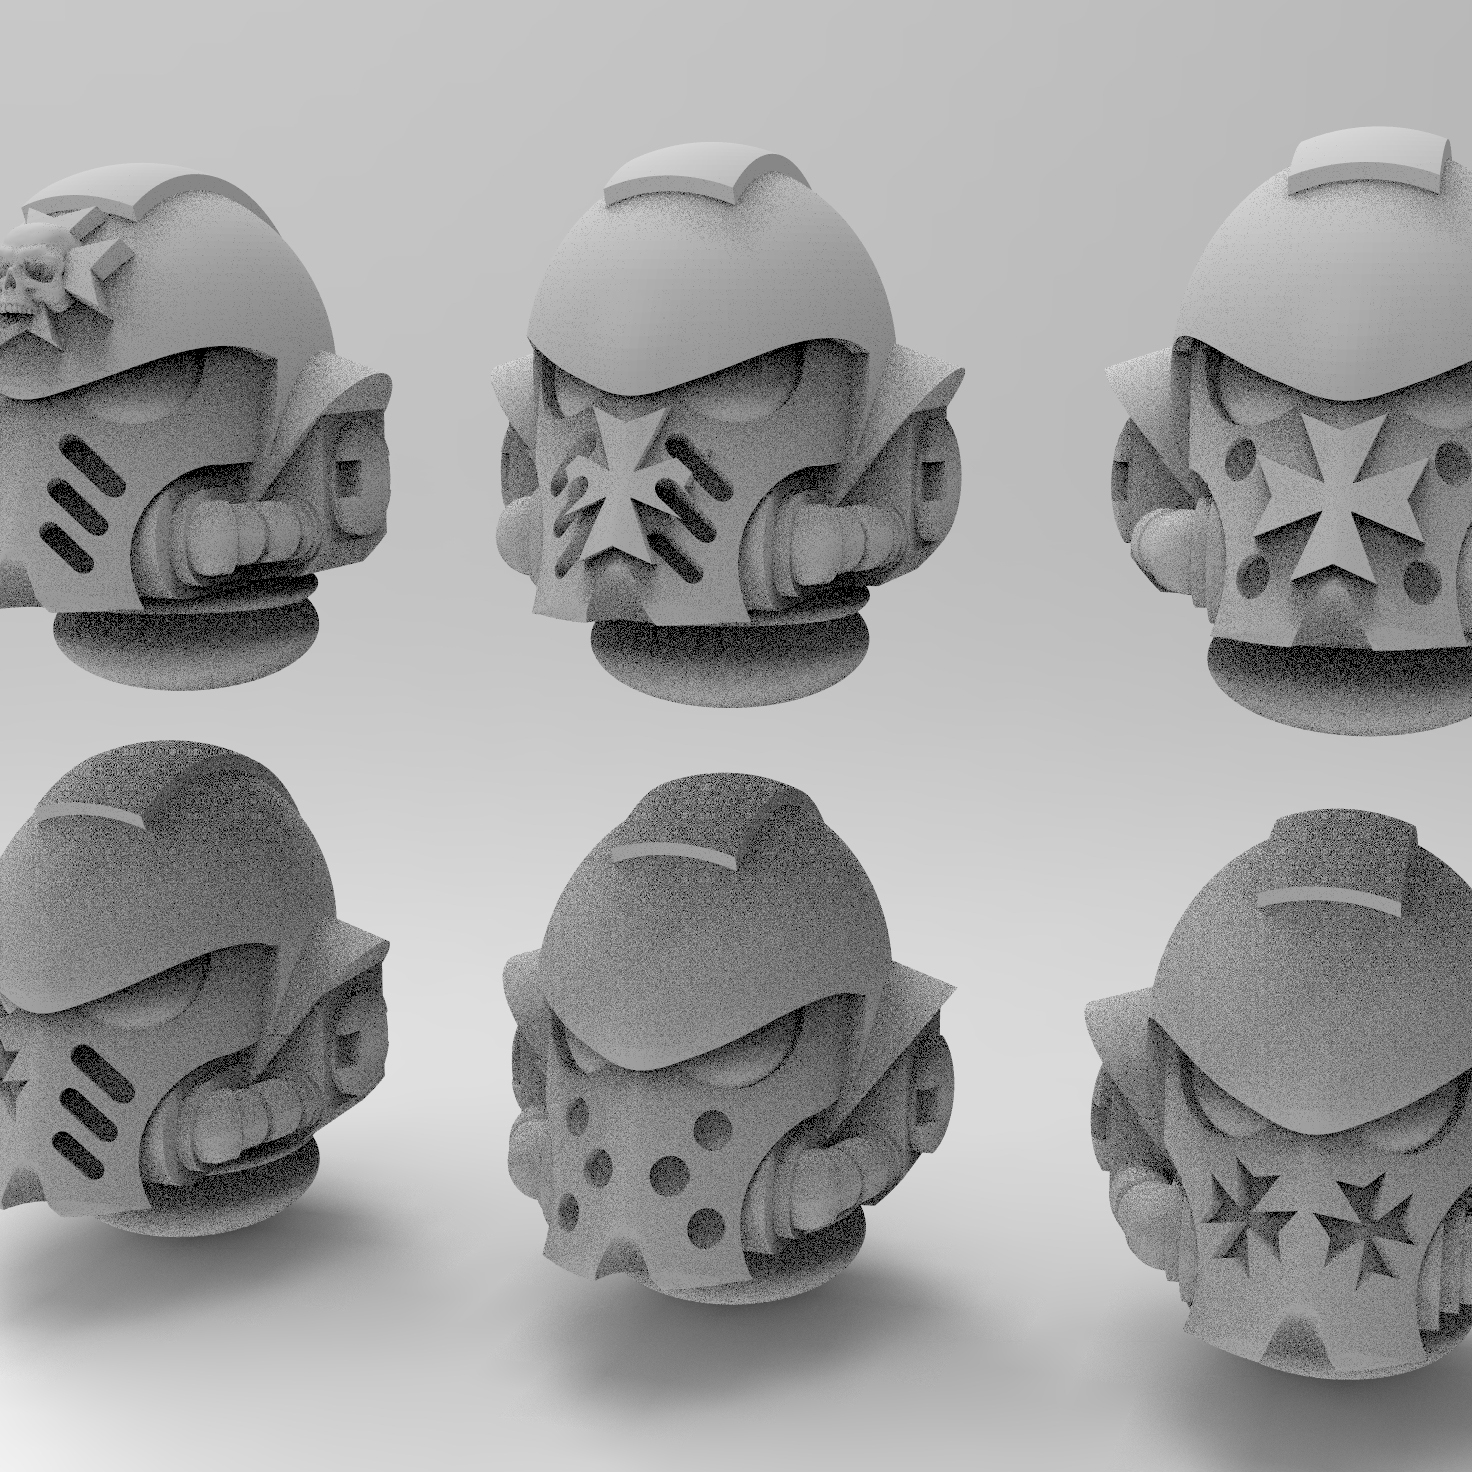 4 blank.jpg Download free STL file Black Templars Primaris Helmet • Object to 3D print, KrackendoorStudios